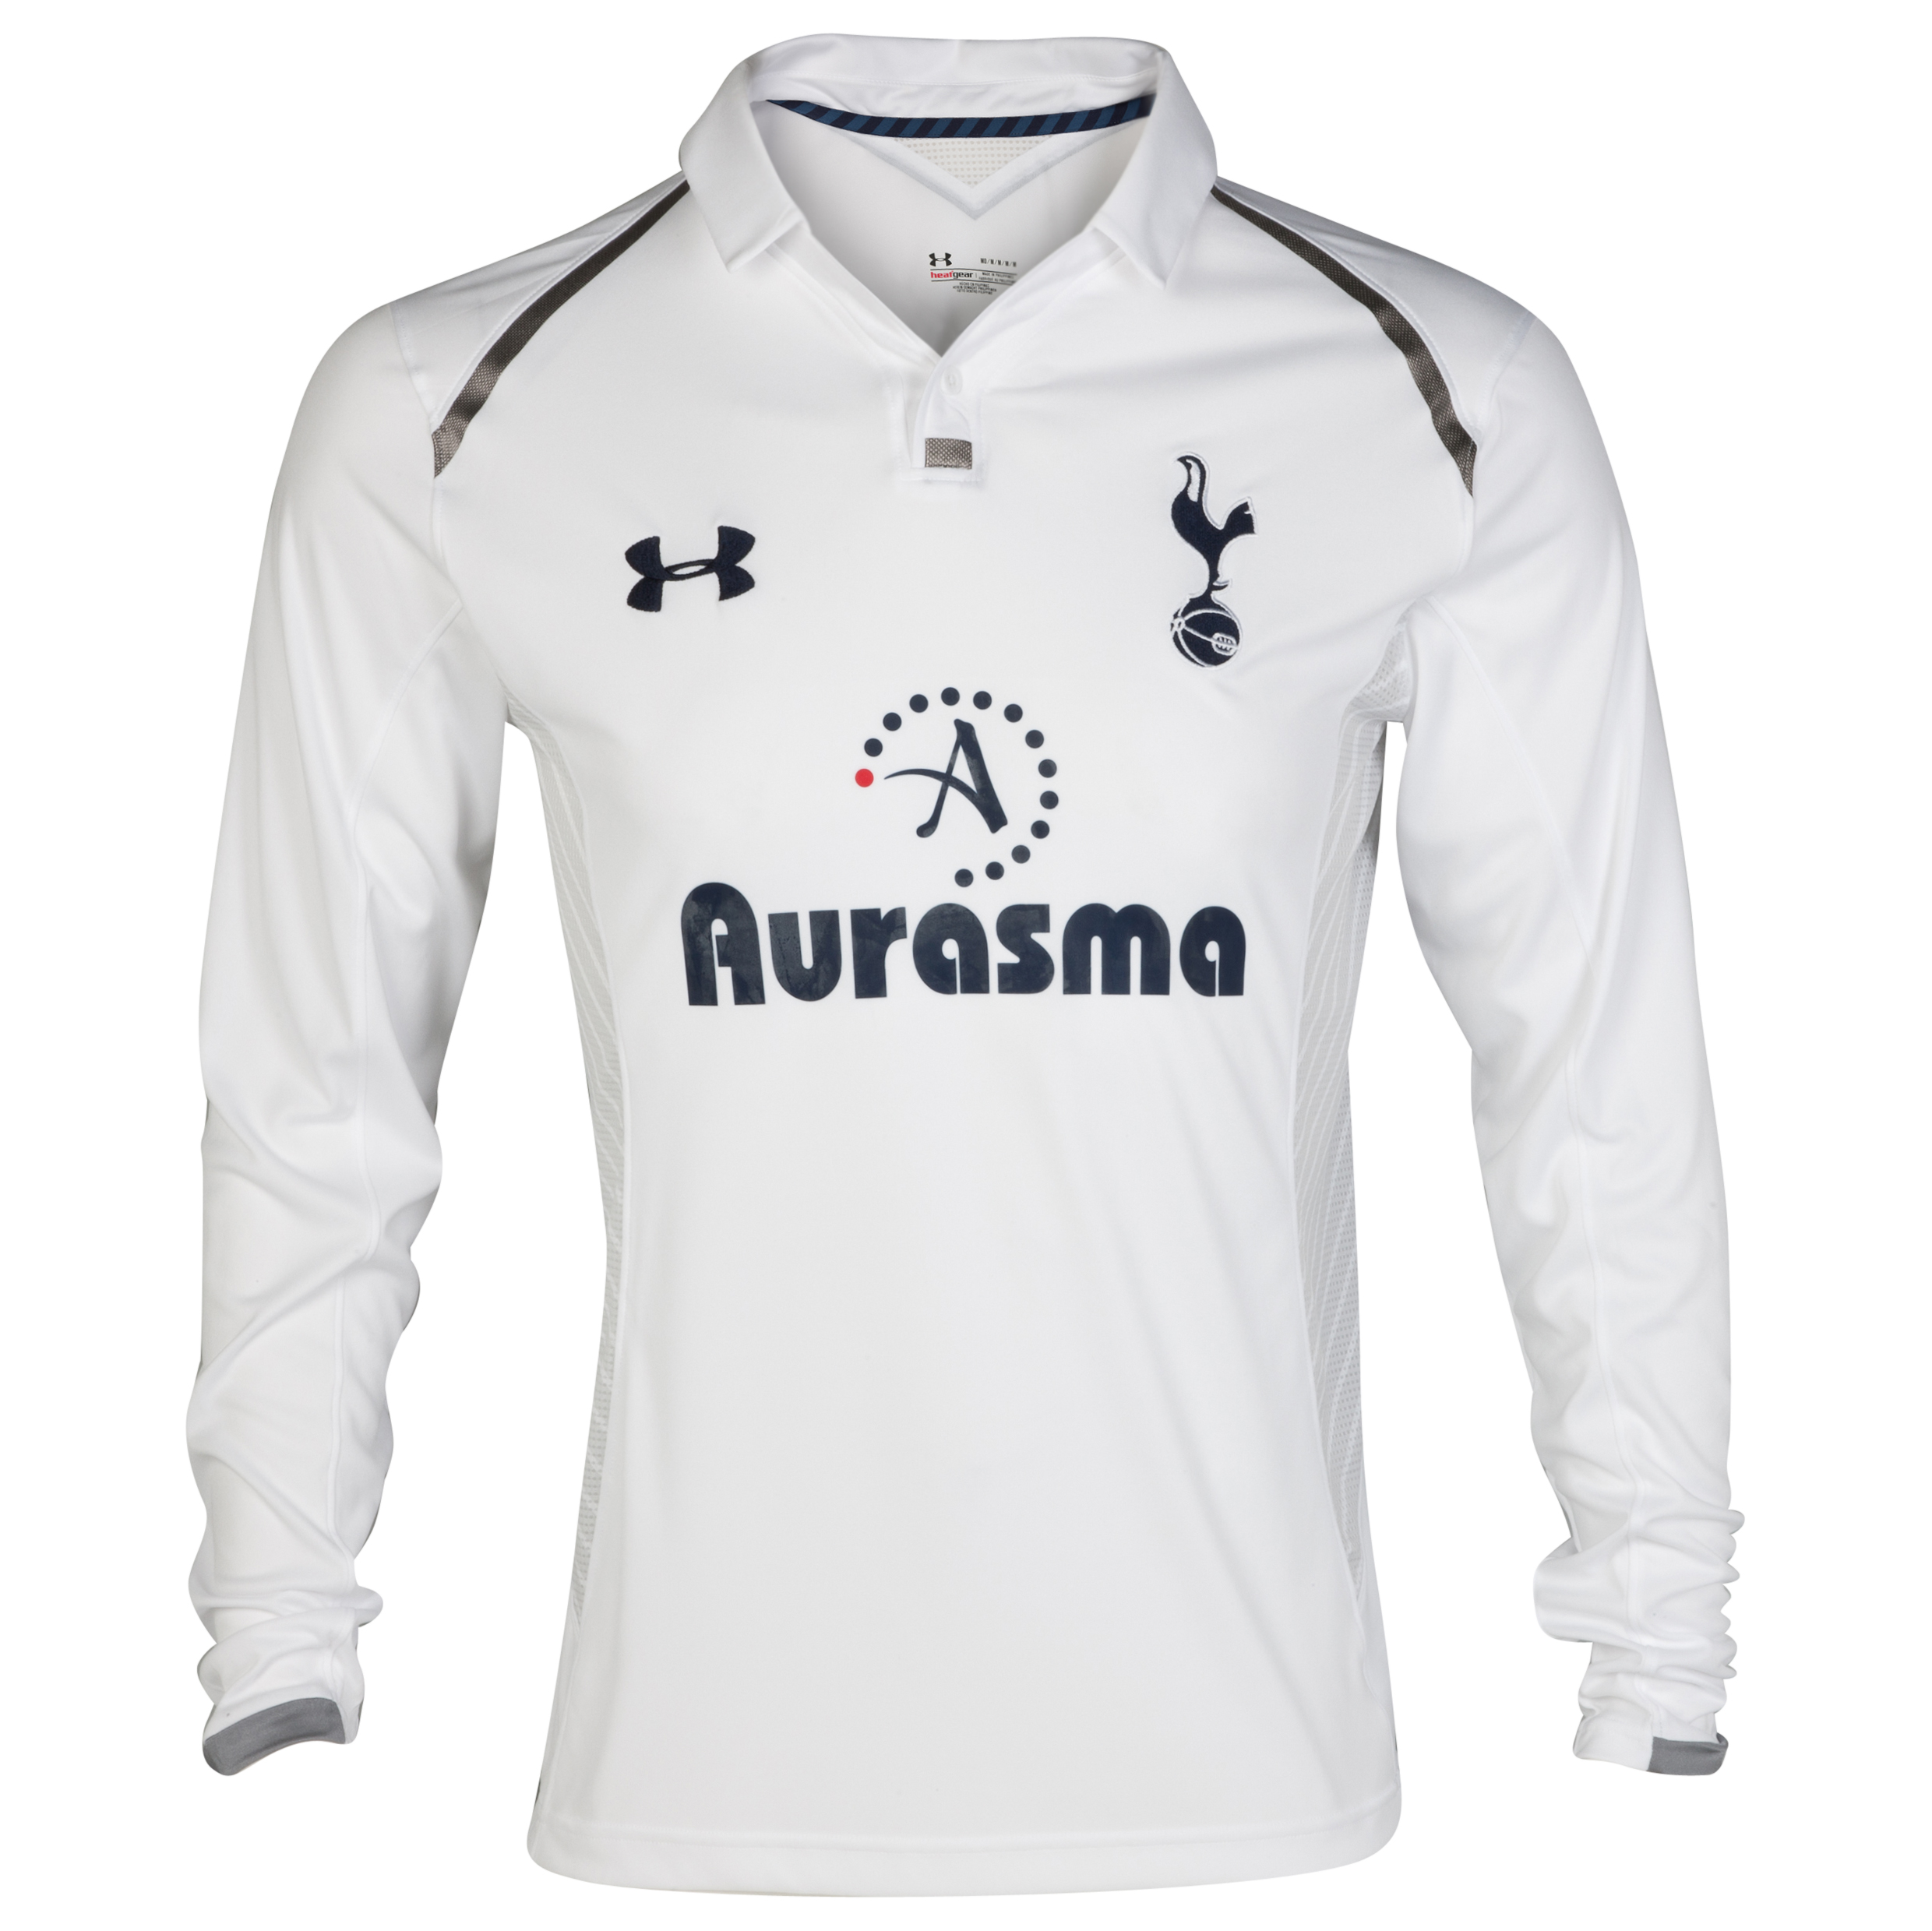 Buy Tottenham Hotspur Home Kit 2012/13 Long Sleeve